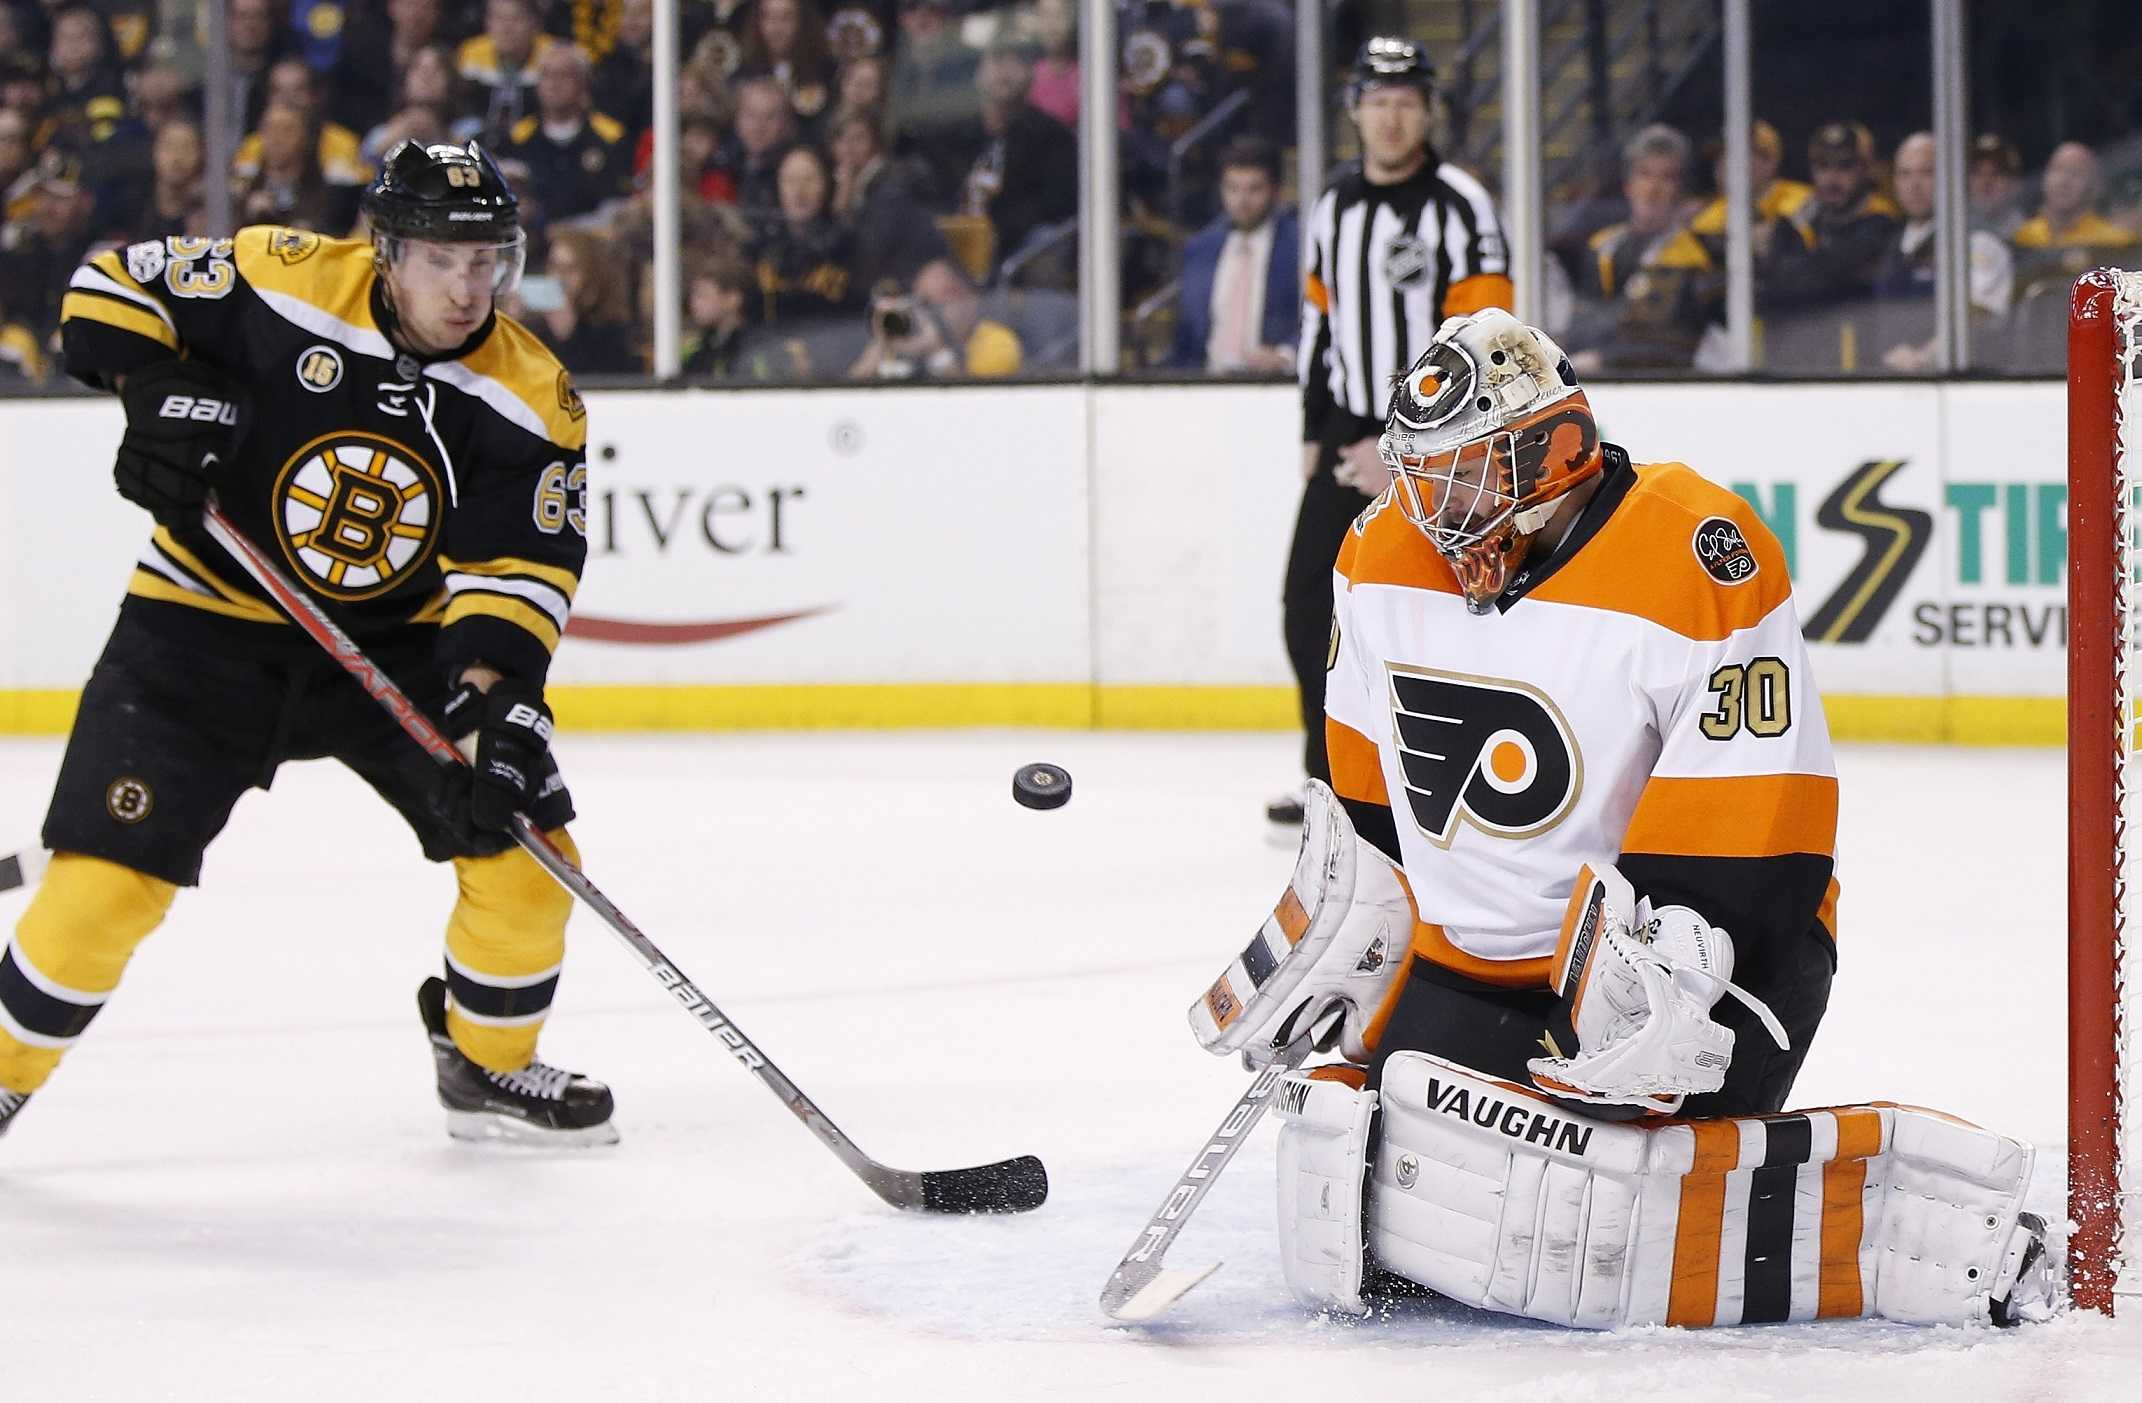 Flyers' Neuvirth carted off ice after collapsing in crease